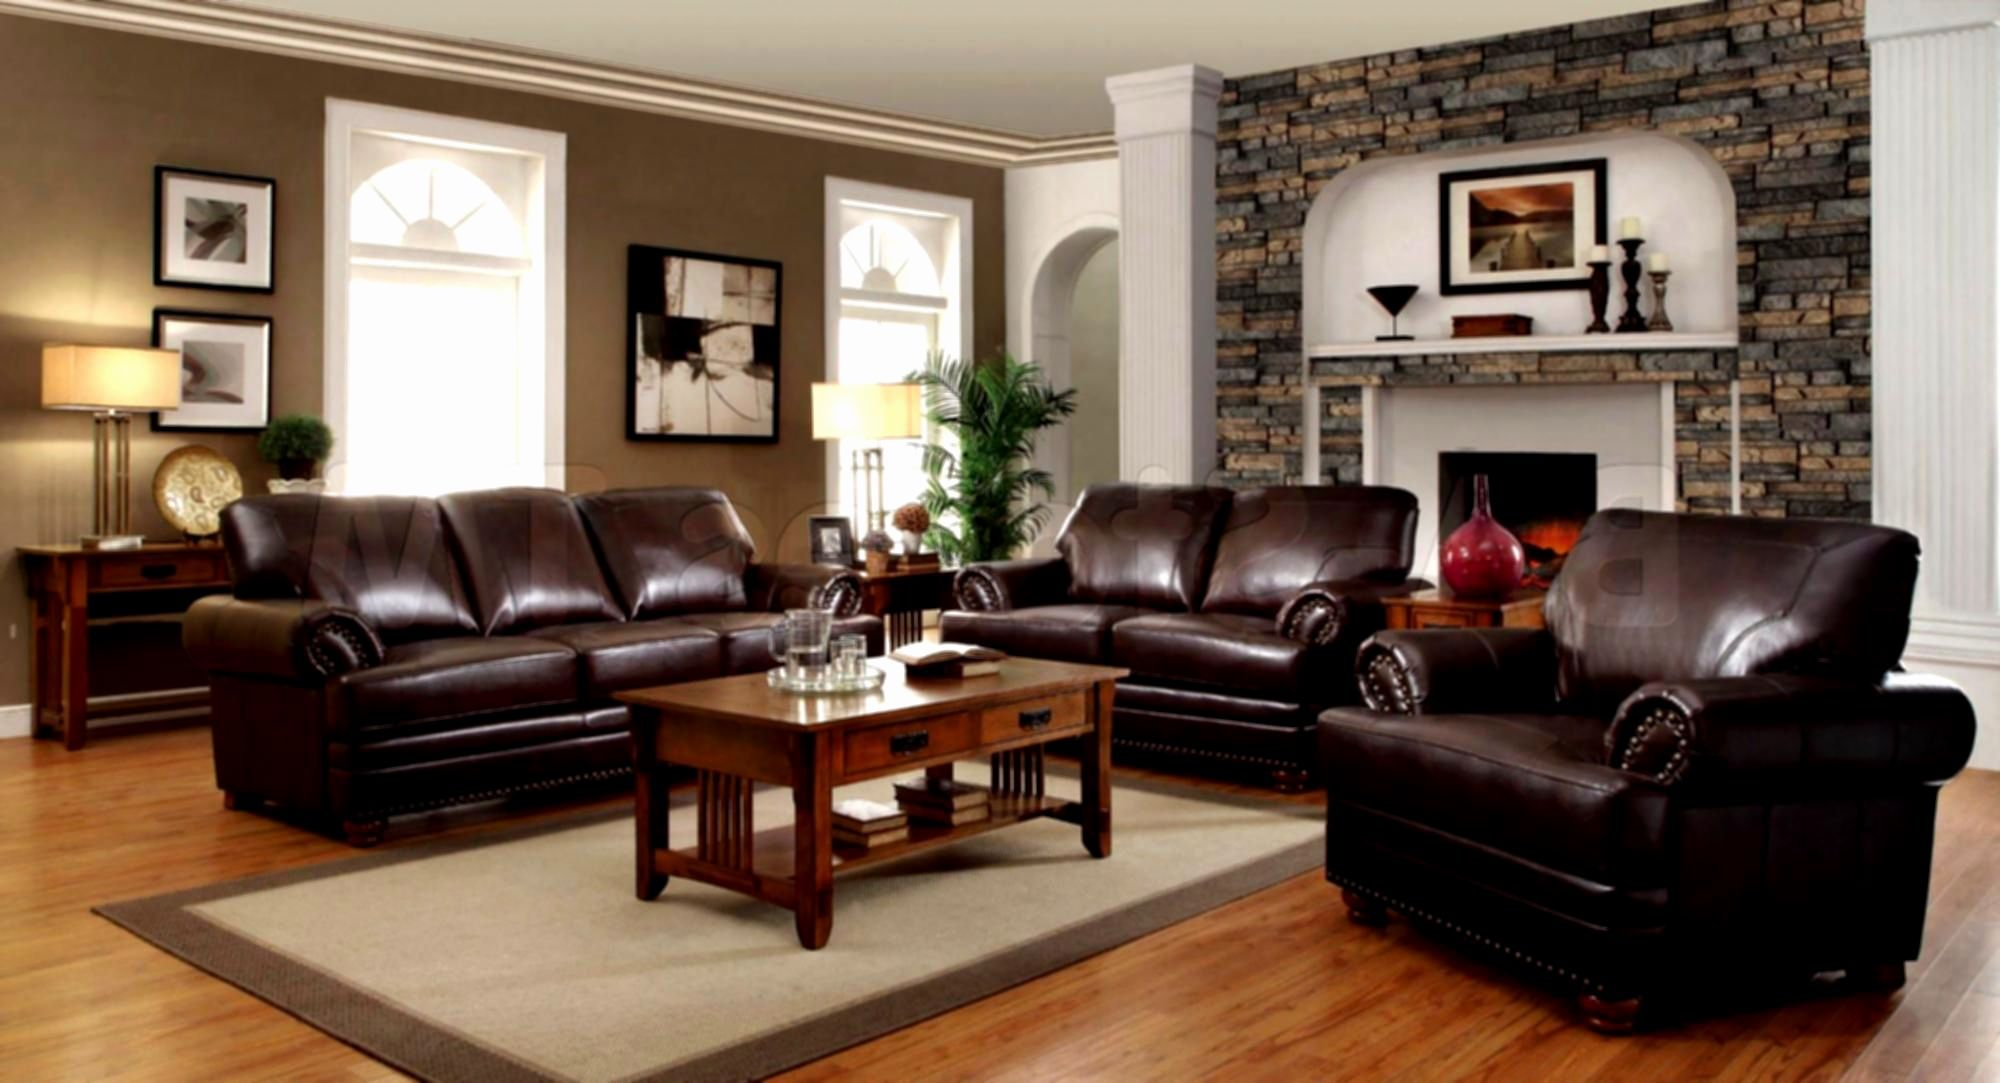 awesome brown leather sofa set photos pictures of living rooms with rh pinterest com au Black Couch Living Room Ideas Living Room Wall Decor